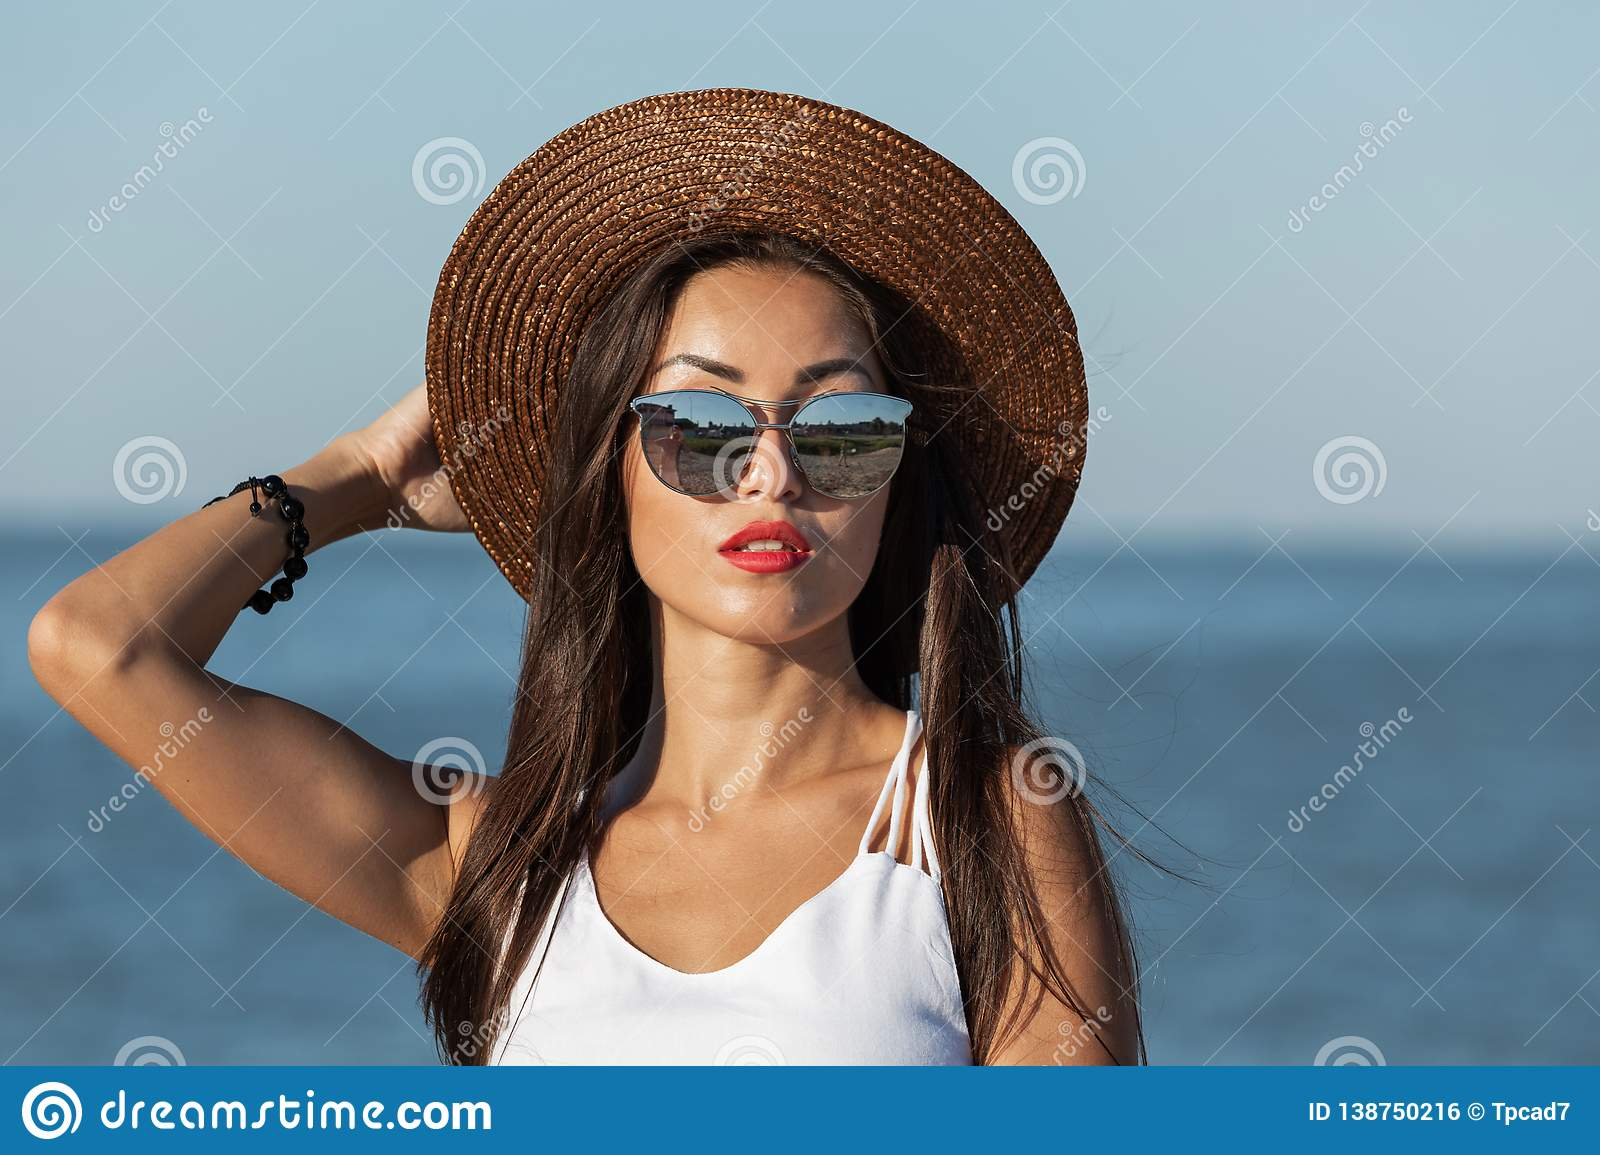 Portrait of a gorgeous brunette girl with long hair and red lipstick in white dress, sunglasses and brown hat near the